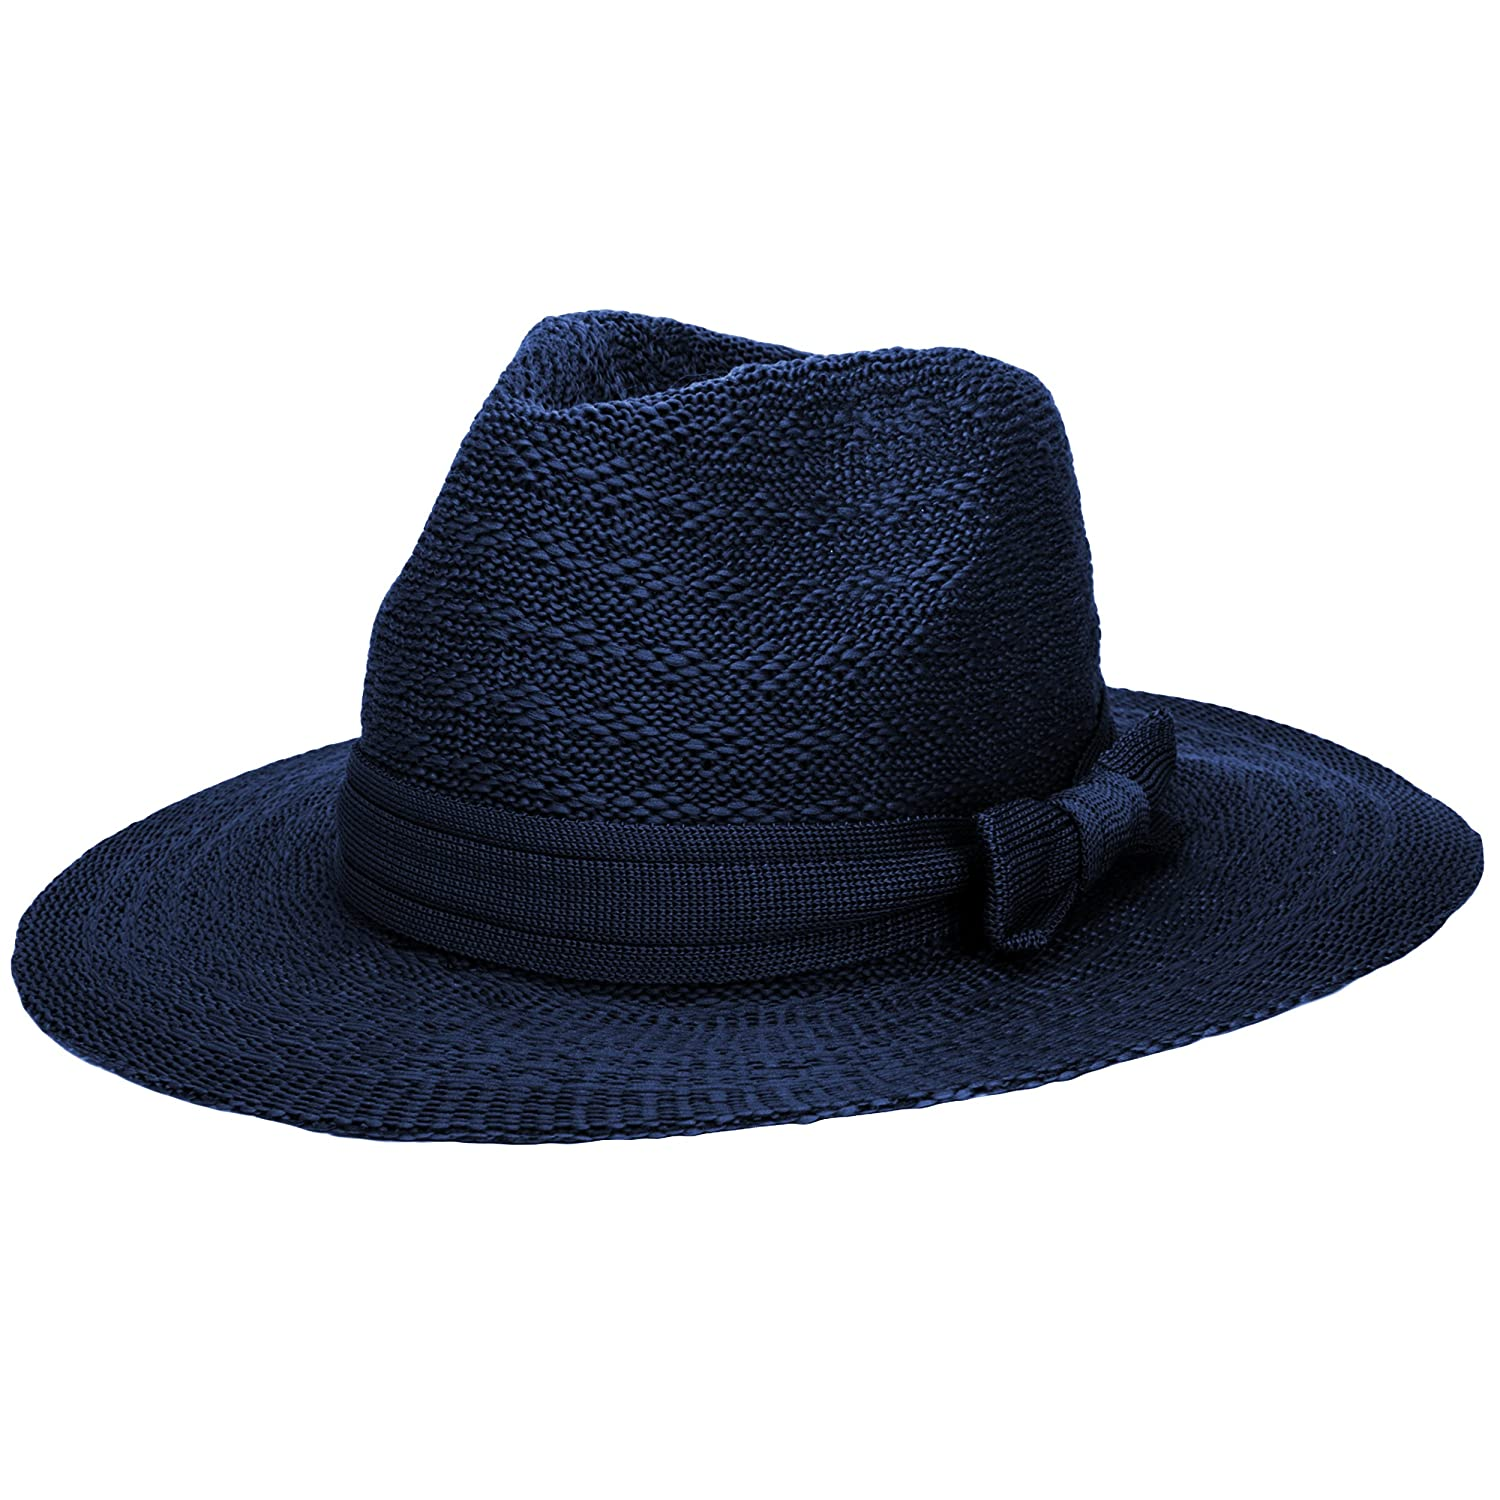 Aerusi Damen Coco Keys Series Klassiker Blower Jazz Hut Schwarzes Fedora Trilby Hut